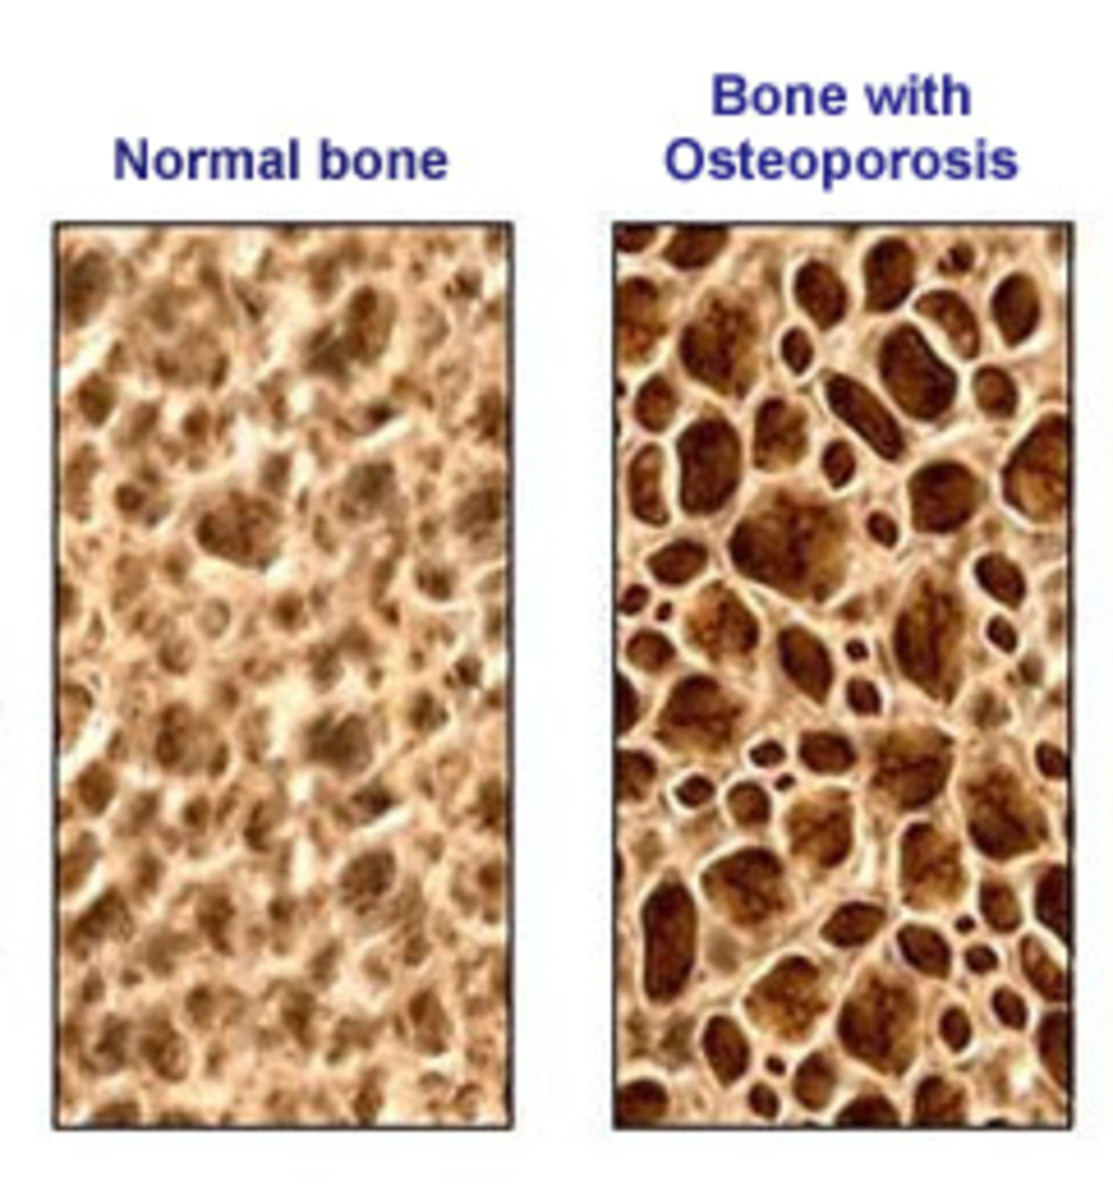 Normal Bone and bone with osteporosis.